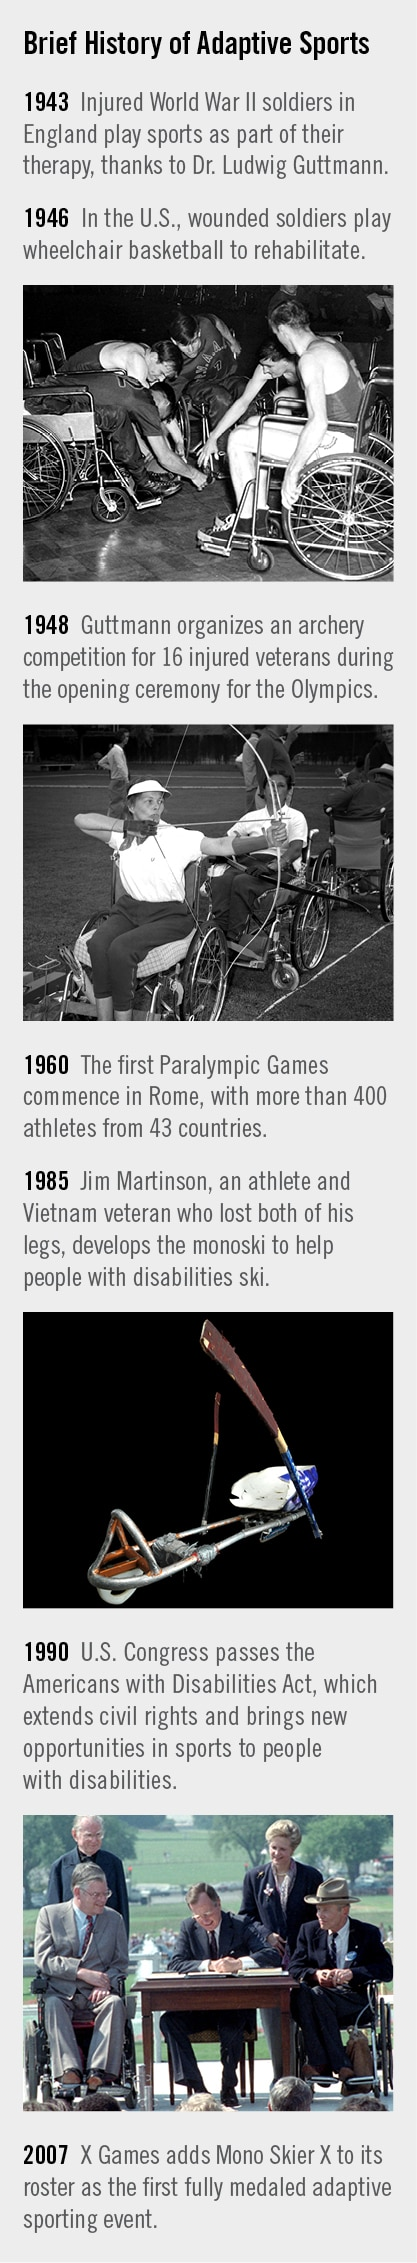 Timeline ranging from rehabilitation activities for soldiers in 1943 to addition of Mono Skier X to X Games in 2007 (State Dept./Photos 1, 2 and 4 © AP Images; Photo 3 courtesy of Smithsonian Institution)